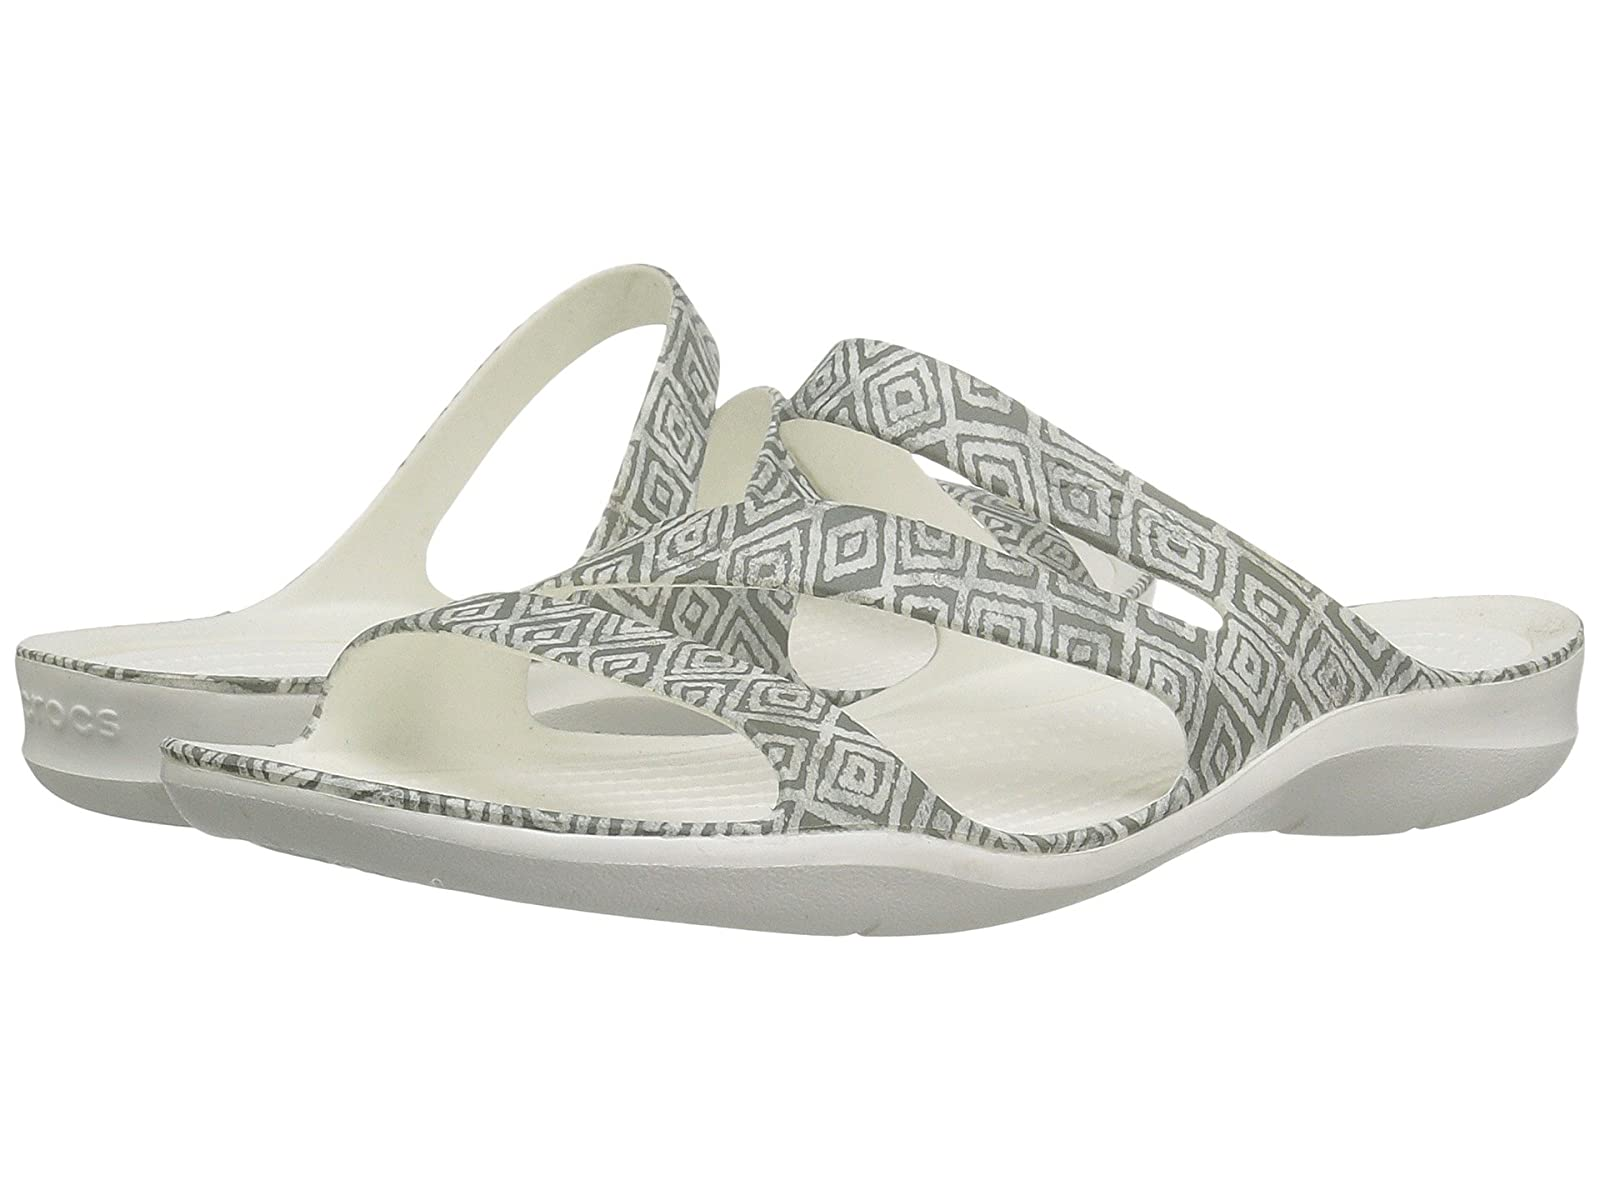 Crocs Swiftwater Graphic SandalComfortable and distinctive shoes